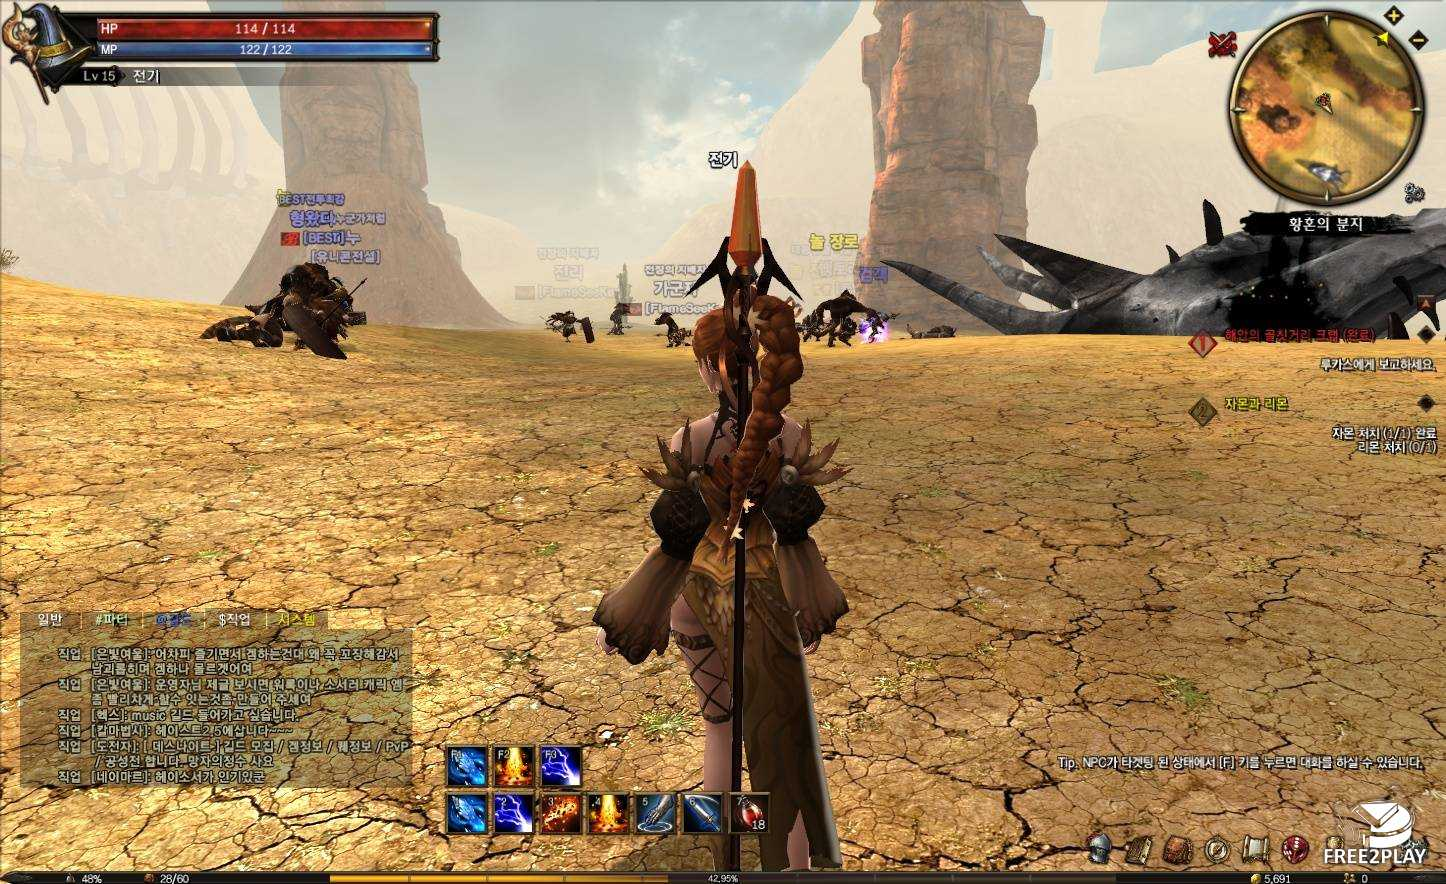 dragon-knights-online-screenshot-1.jpg